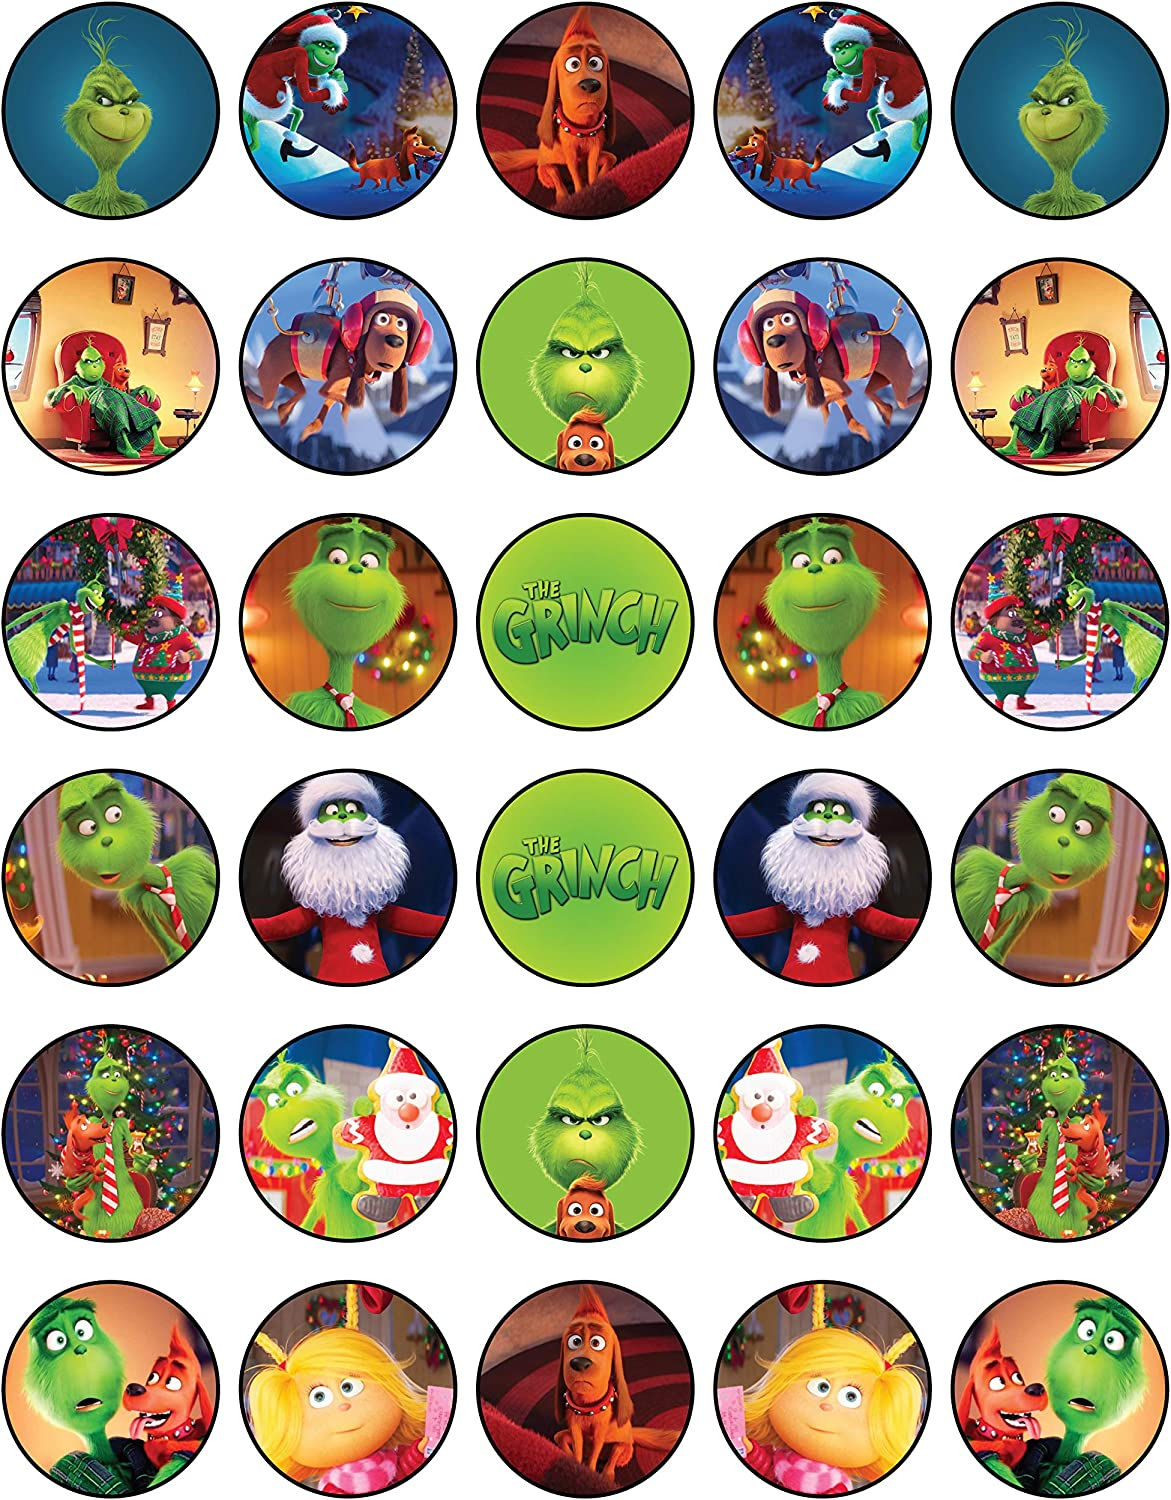 30 x Edible Cupcake Toppers – The Grinch Party Collection of Edible Cake Decorations |Edible Wafer Sheet